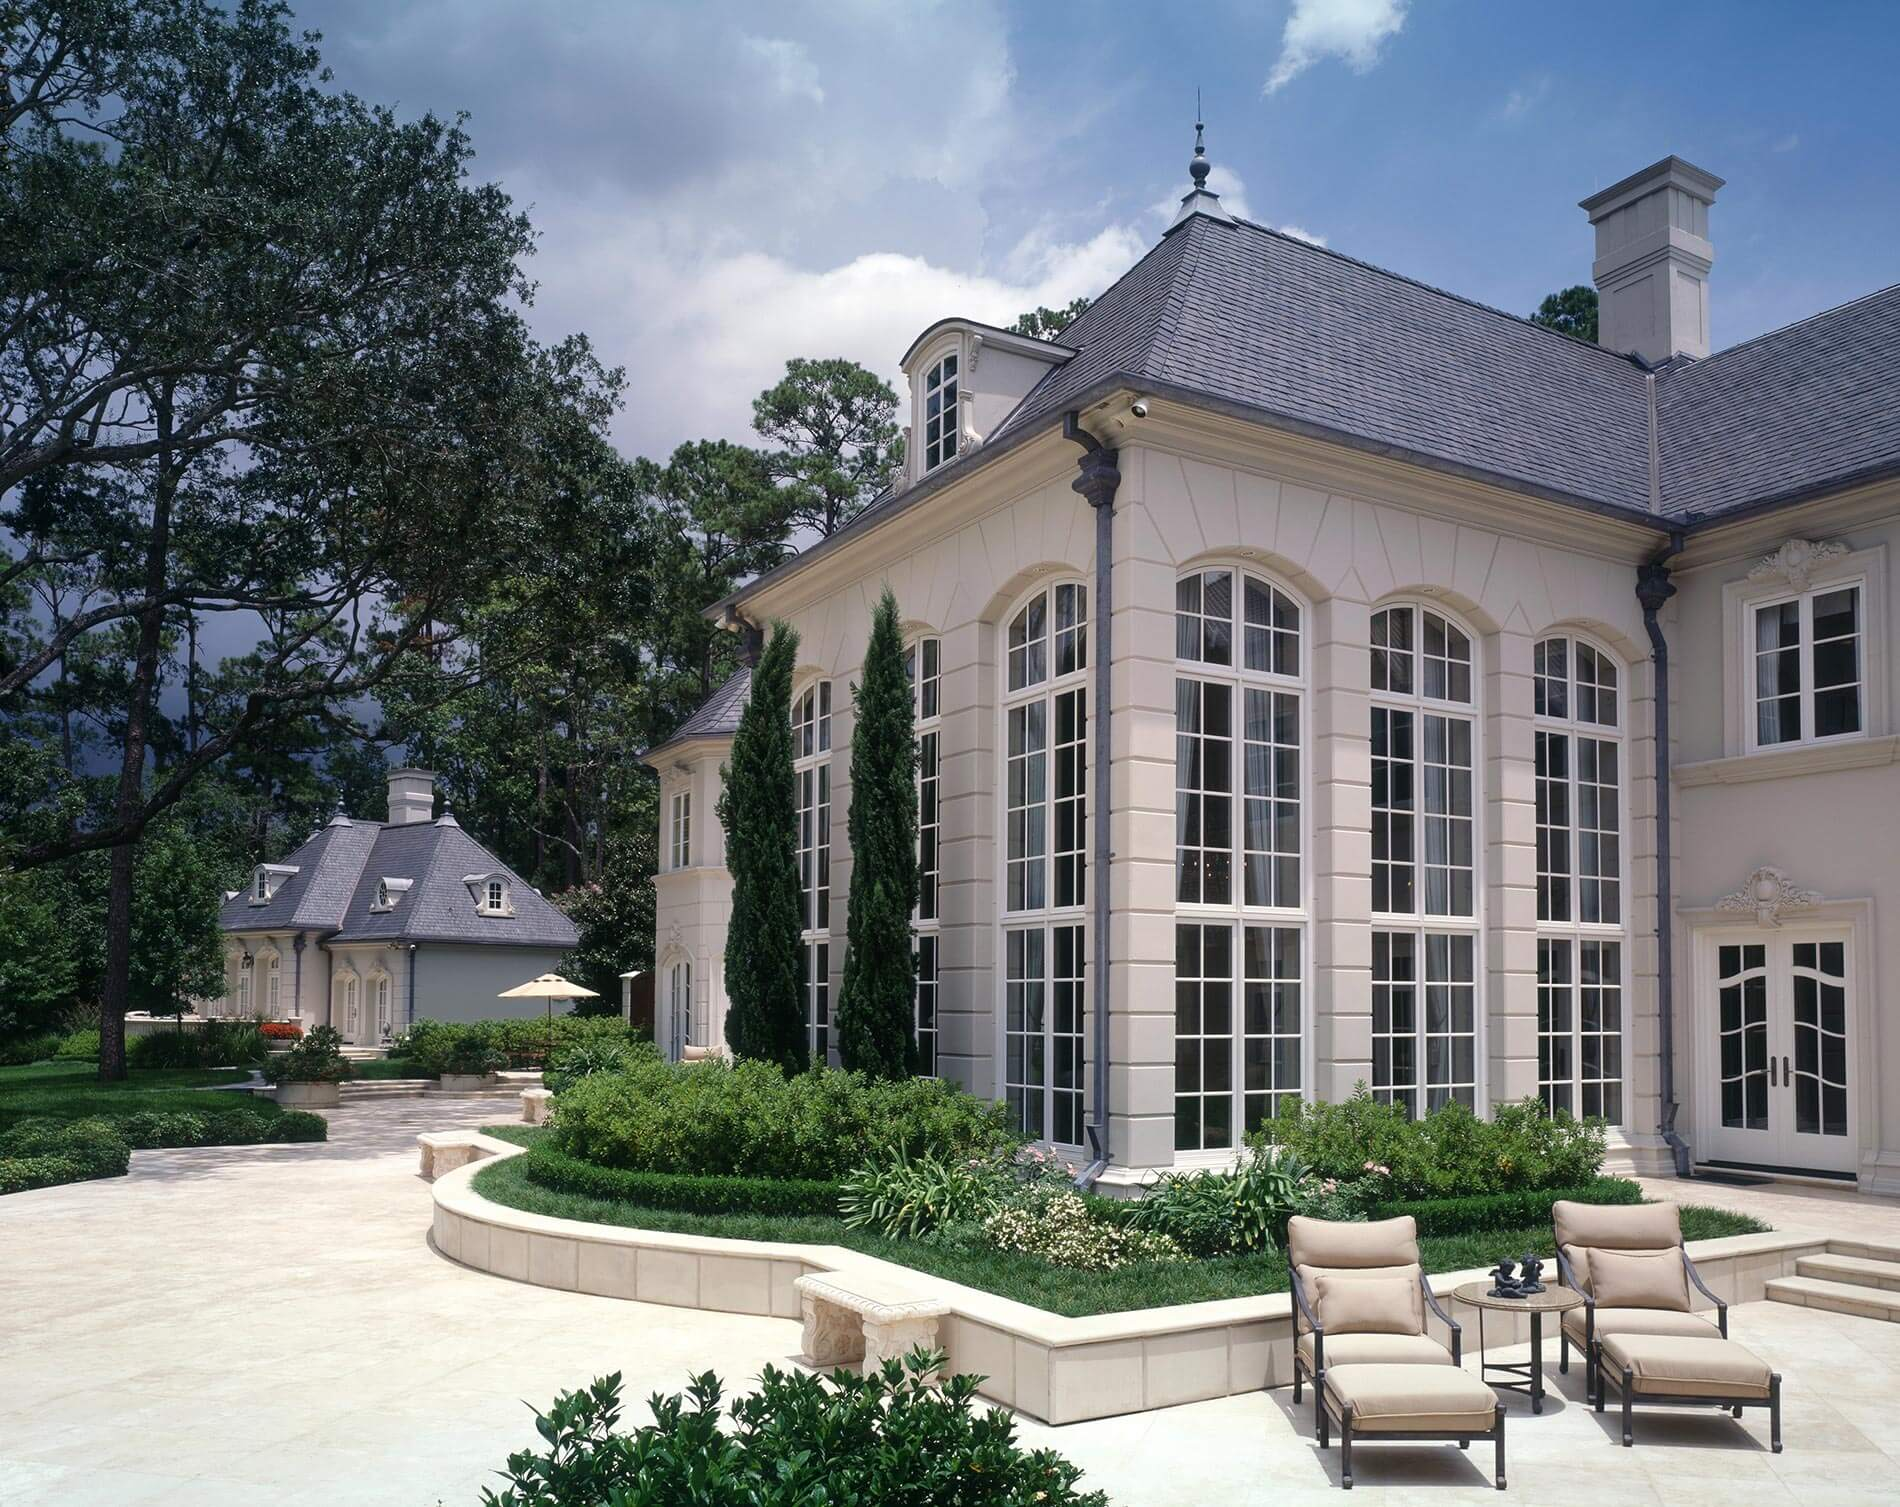 Back of french chateau